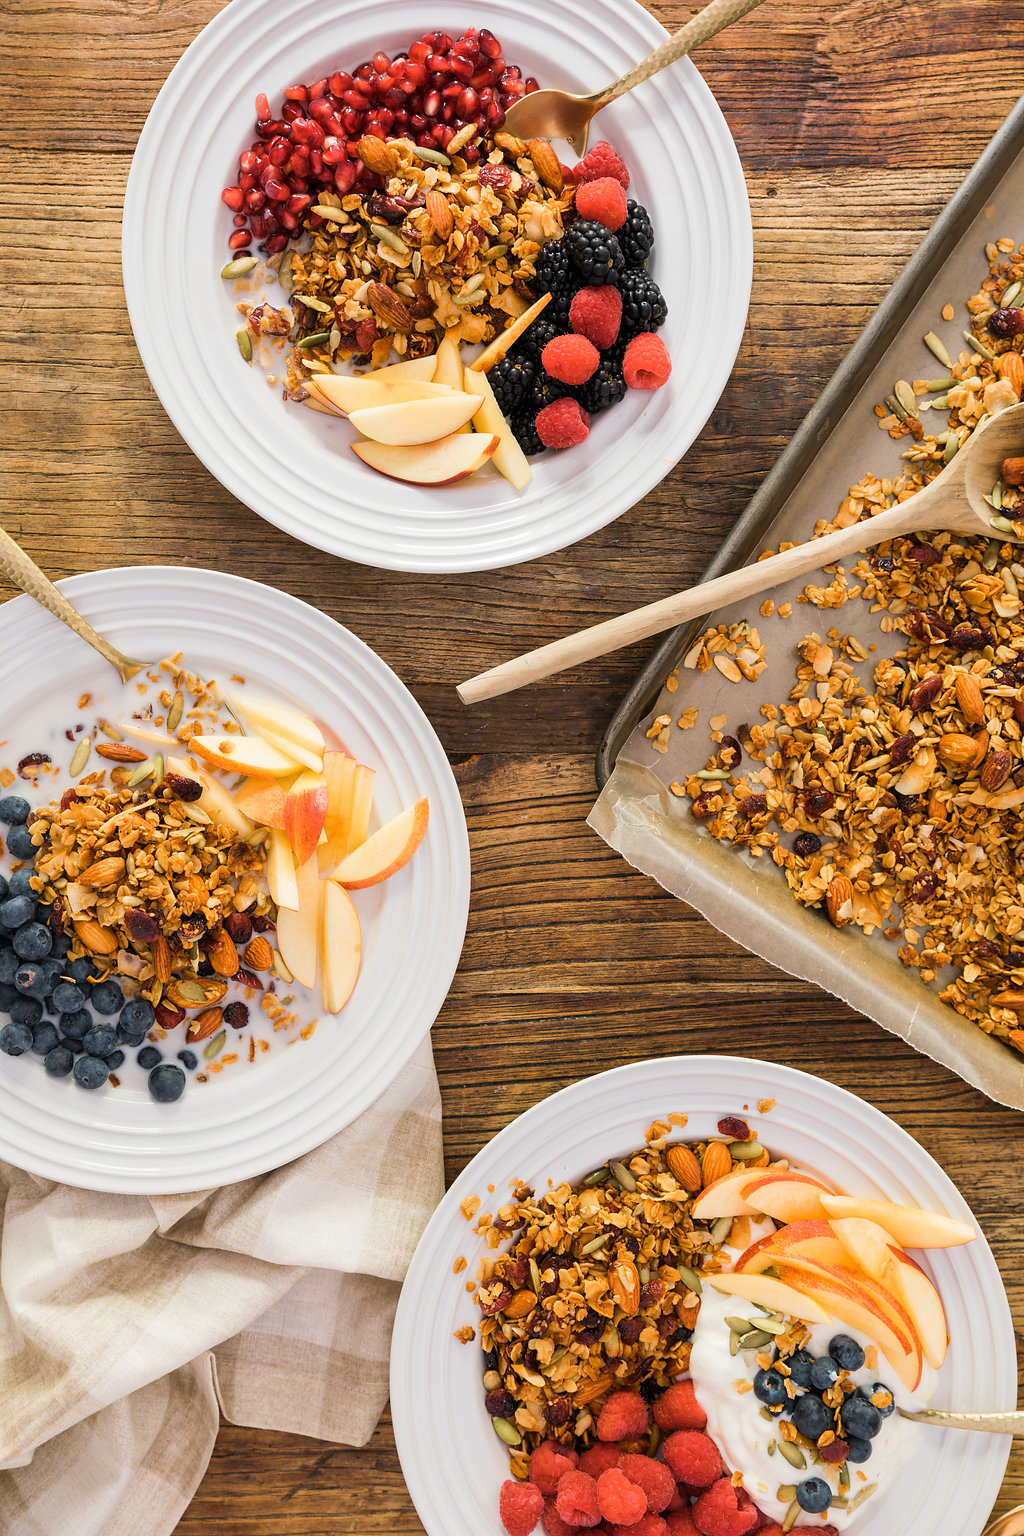 An easy homemade granola recipe full of almonds, sunflower seeds, coconut, and cranberry.